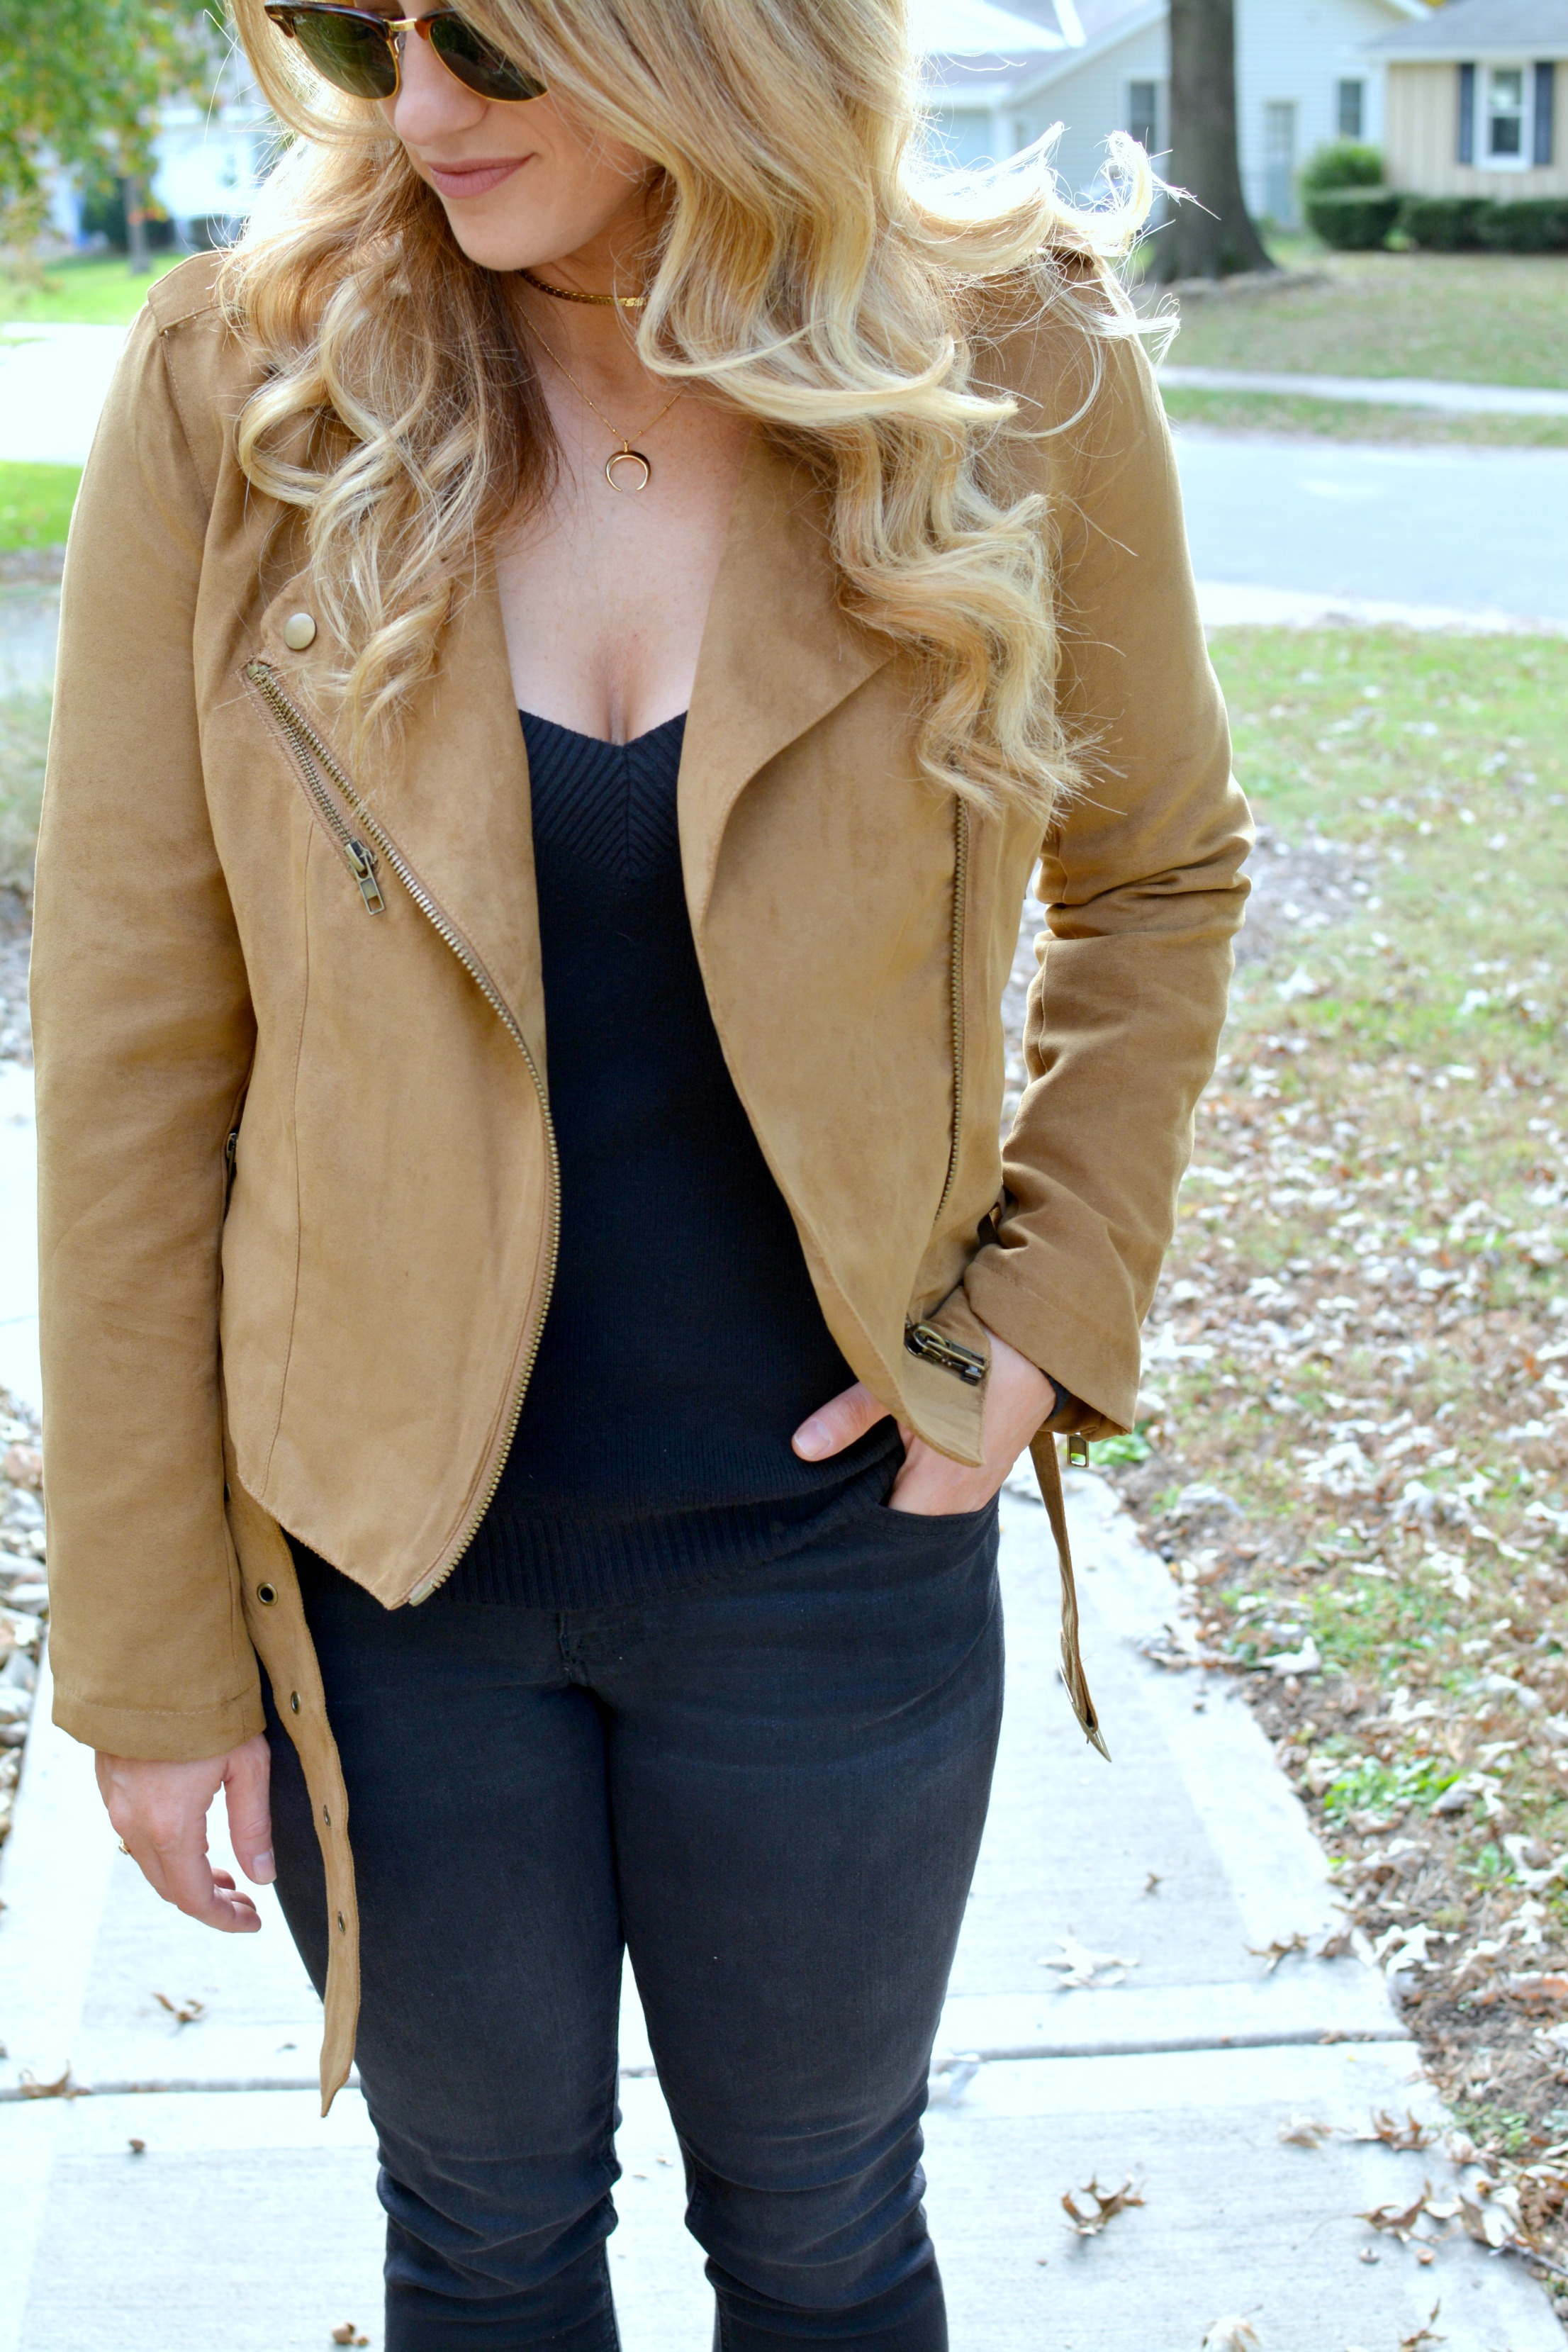 Ashley from LSR in a tan suede jacket, black jeans, and a black sweater